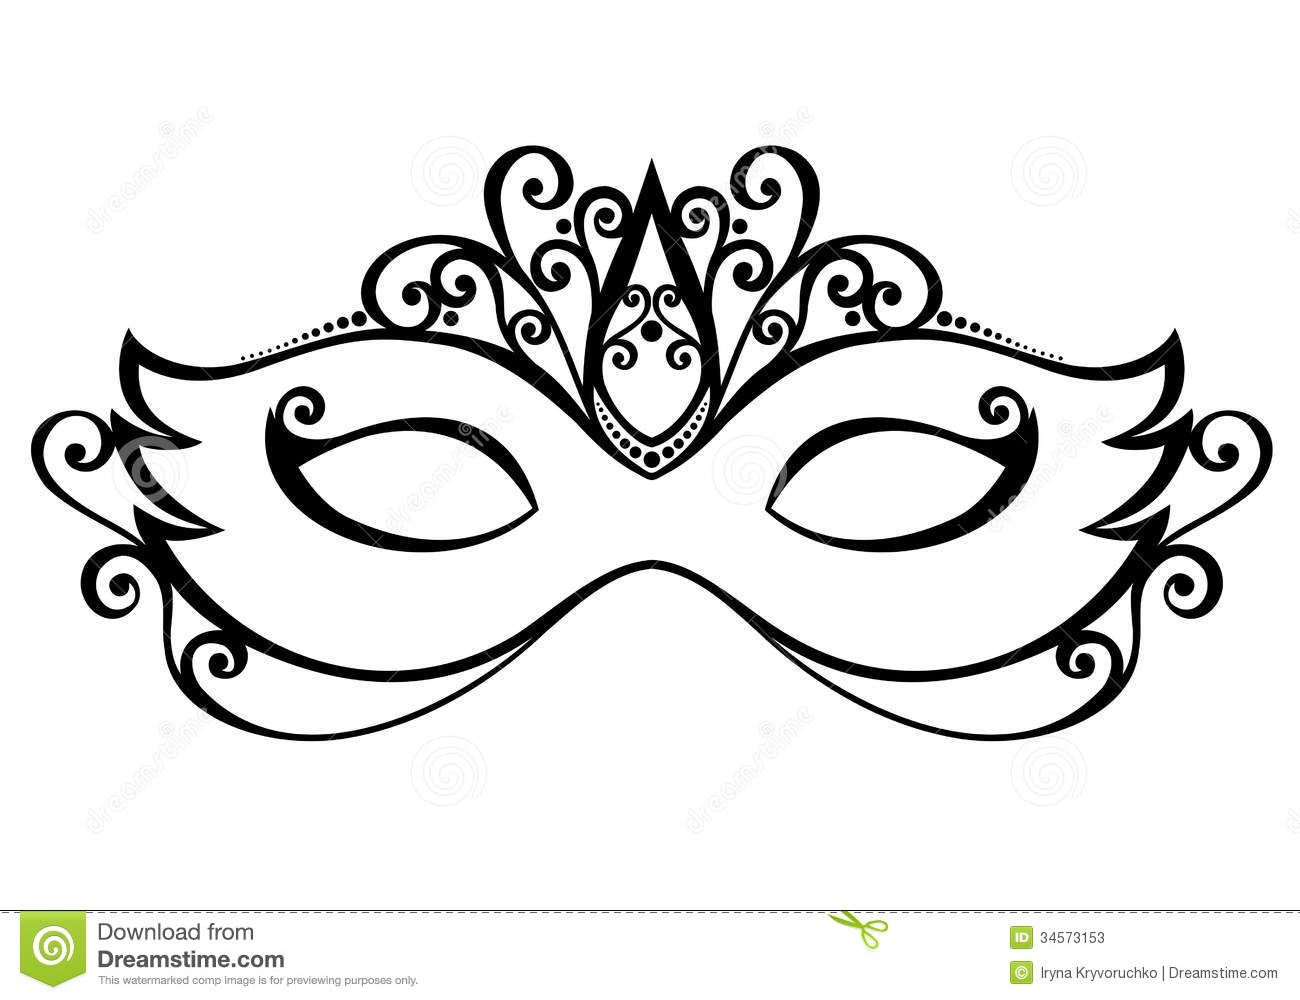 Mardi gras mask black and white clipart image freeuse stock Use the form below to delete this Masquerade Mask Clip Art ... image freeuse stock